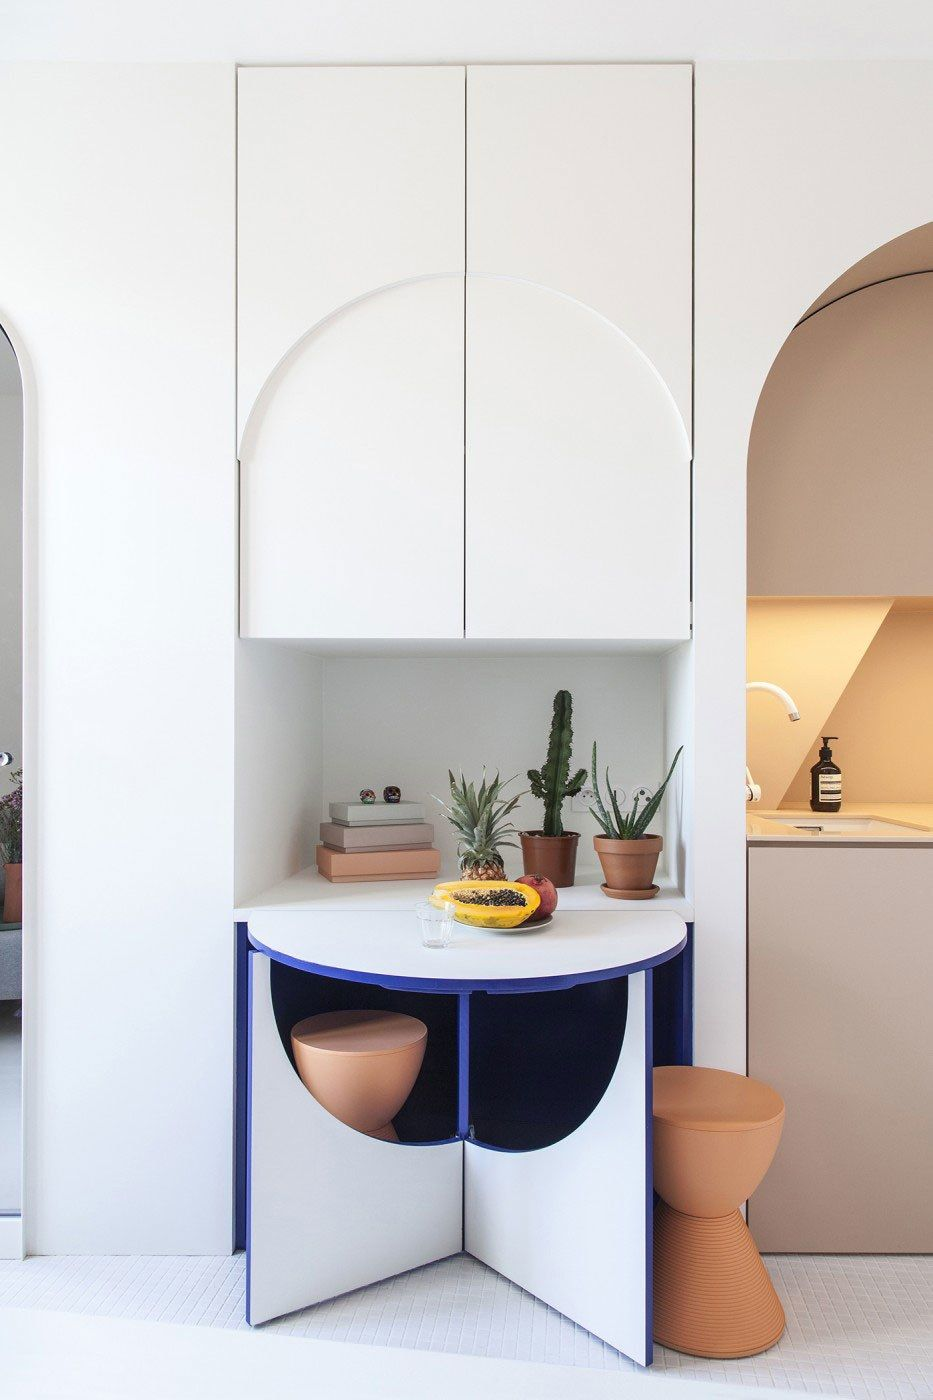 This Playful Parisian Aerie Is Just 120 Square Feet Apartment Design Interior Micro Apartment